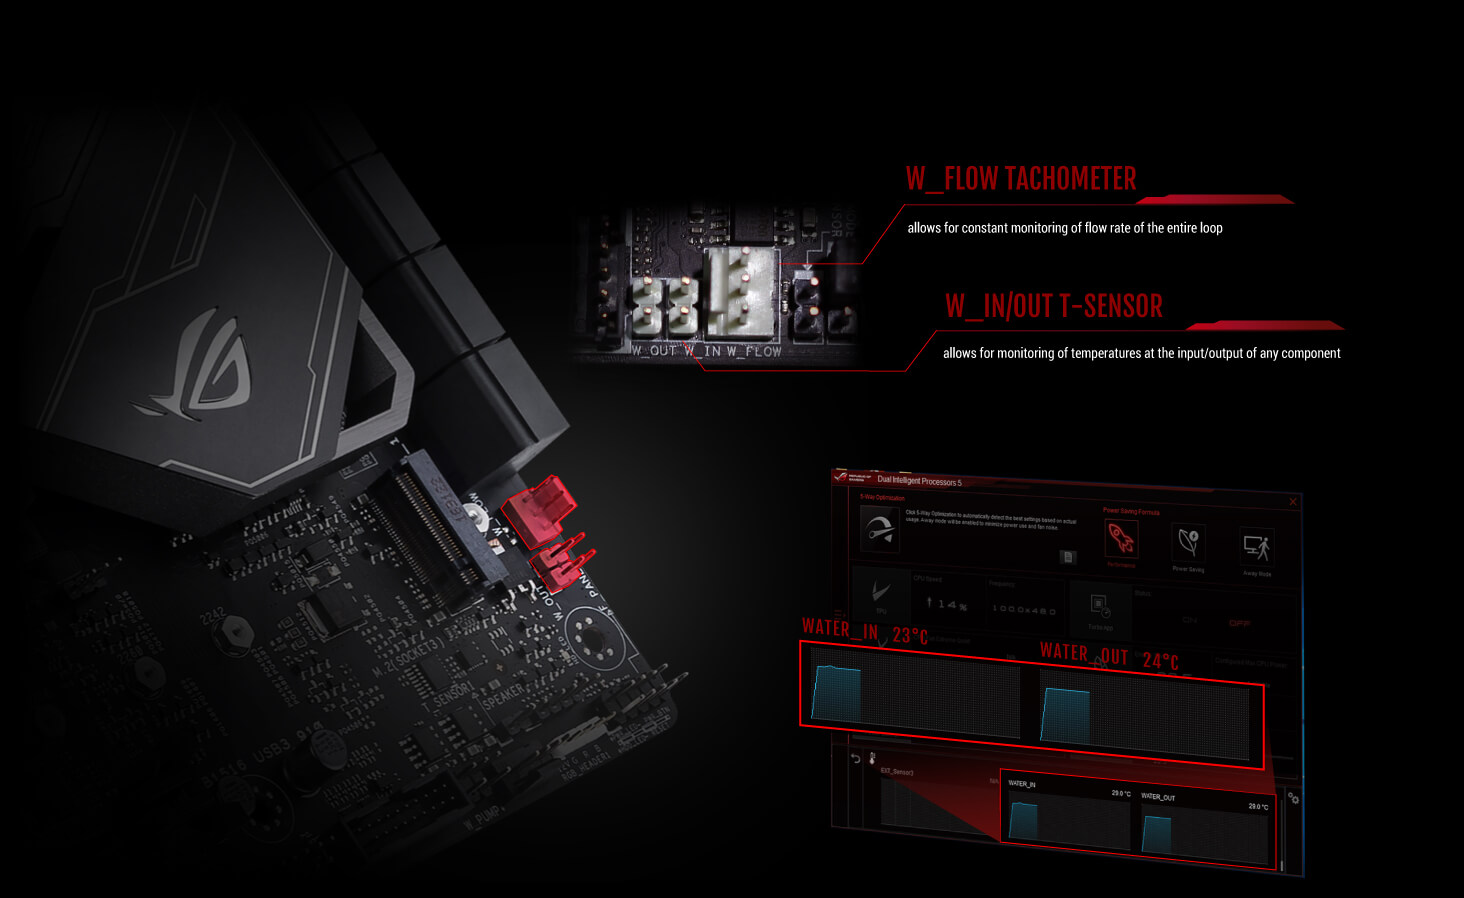 Rog Crosshair Vi Hero Motherboards Asus Usa Corsair Engine Diagram Fully Dominate Your Water Cooling System